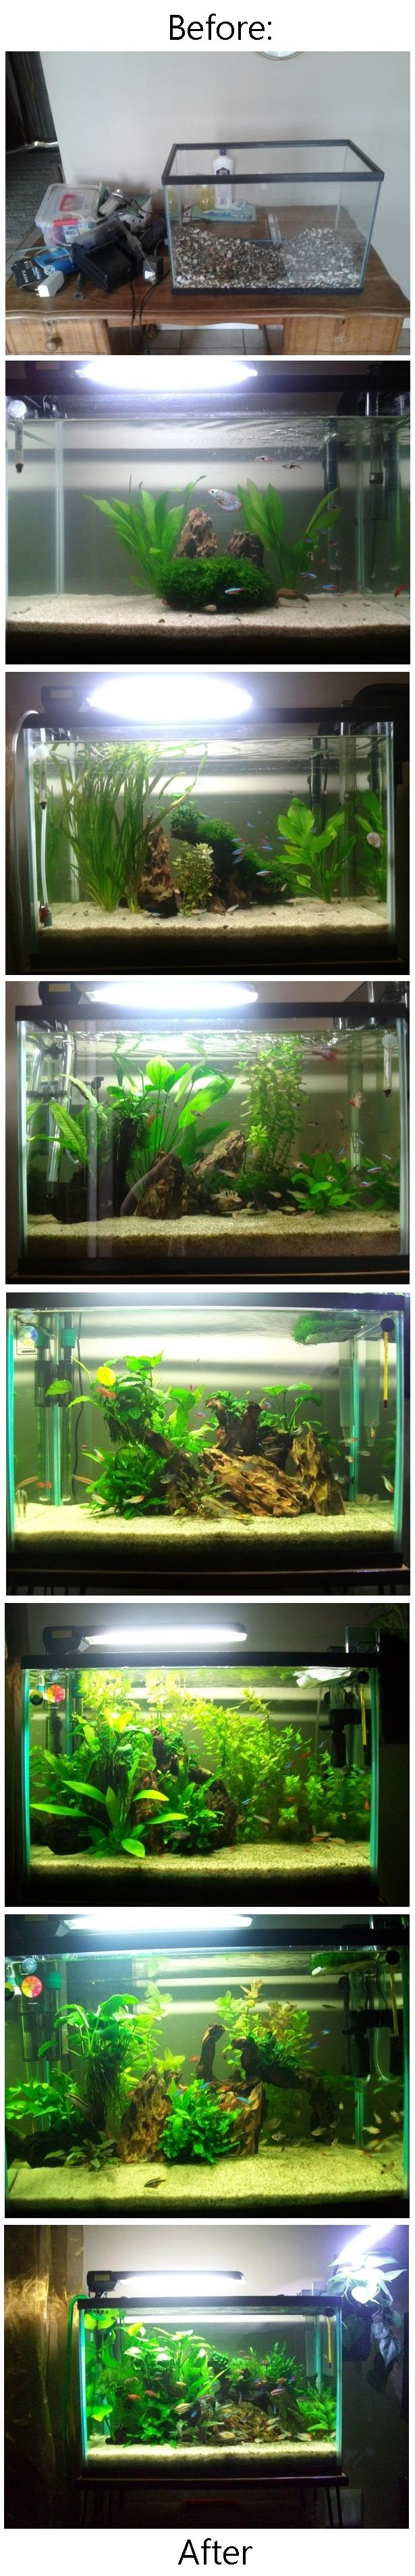 230 best Aquarium Projects and Ideas images on Pinterest